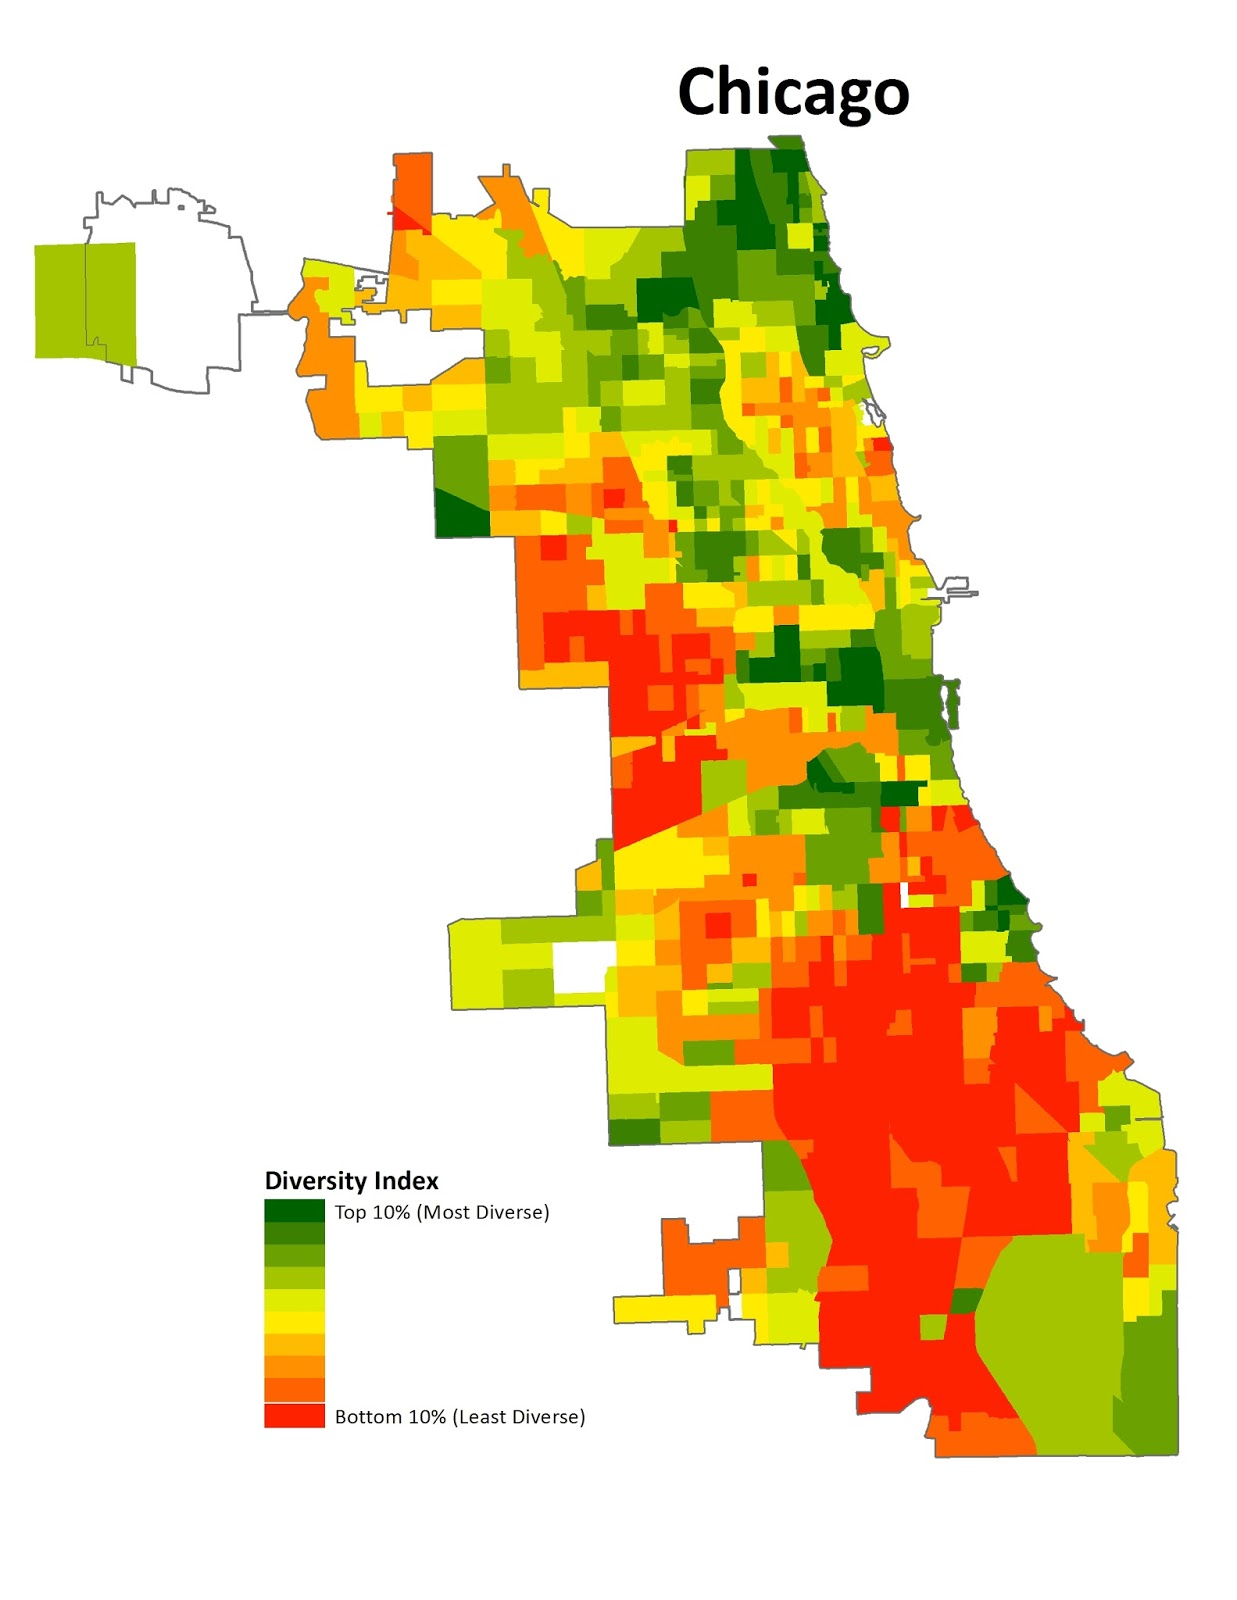 chicago map bad areas - 28 images - chicago neighbourhood map places ...